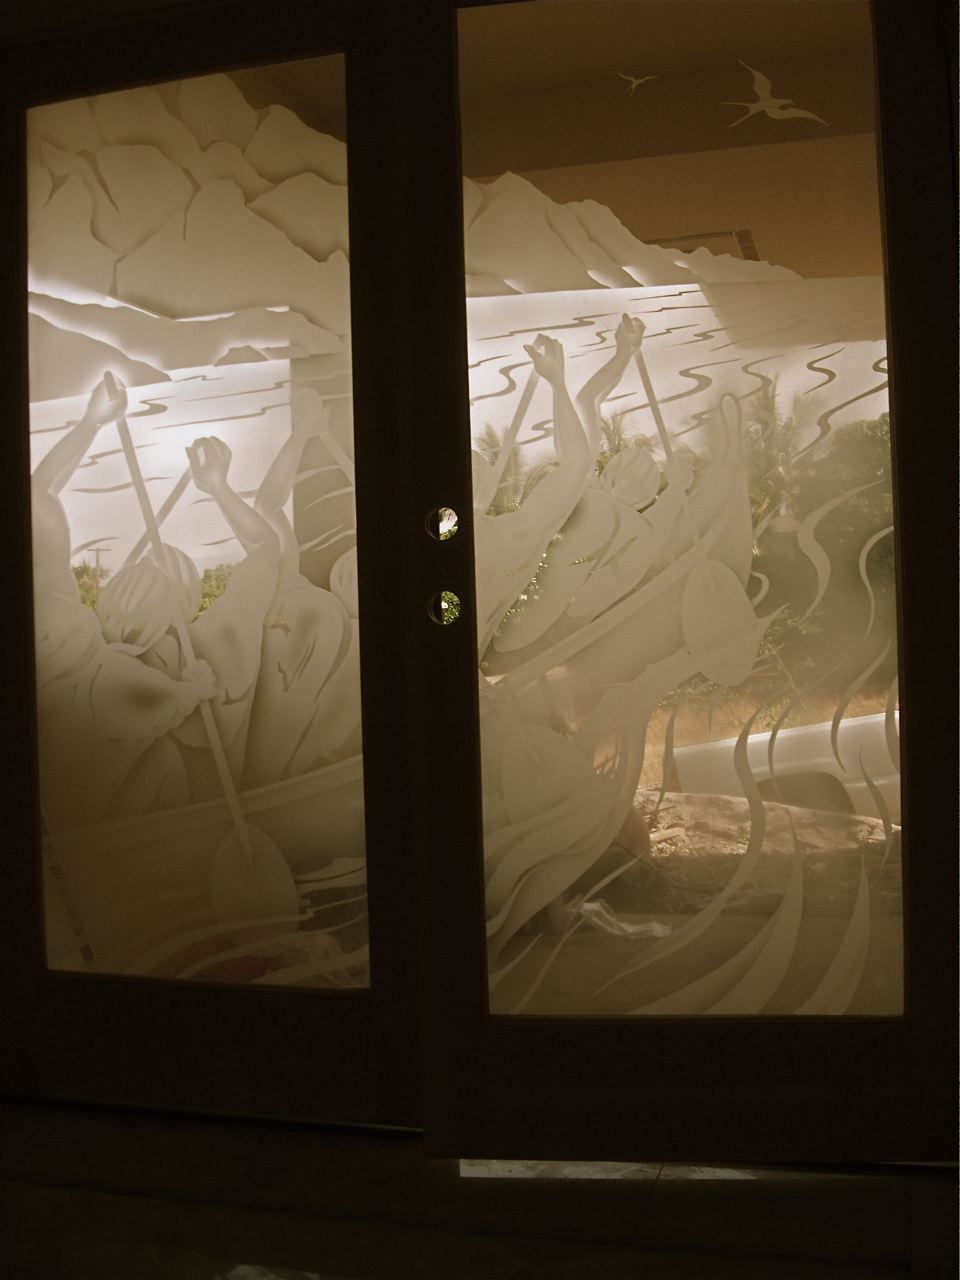 Etched glass doors privacy glass door inserts bamboo pictures to pin - Etched Glass Doors Privacy Glass Door Inserts Bamboo Pictures To Pin Find This Pin And Download